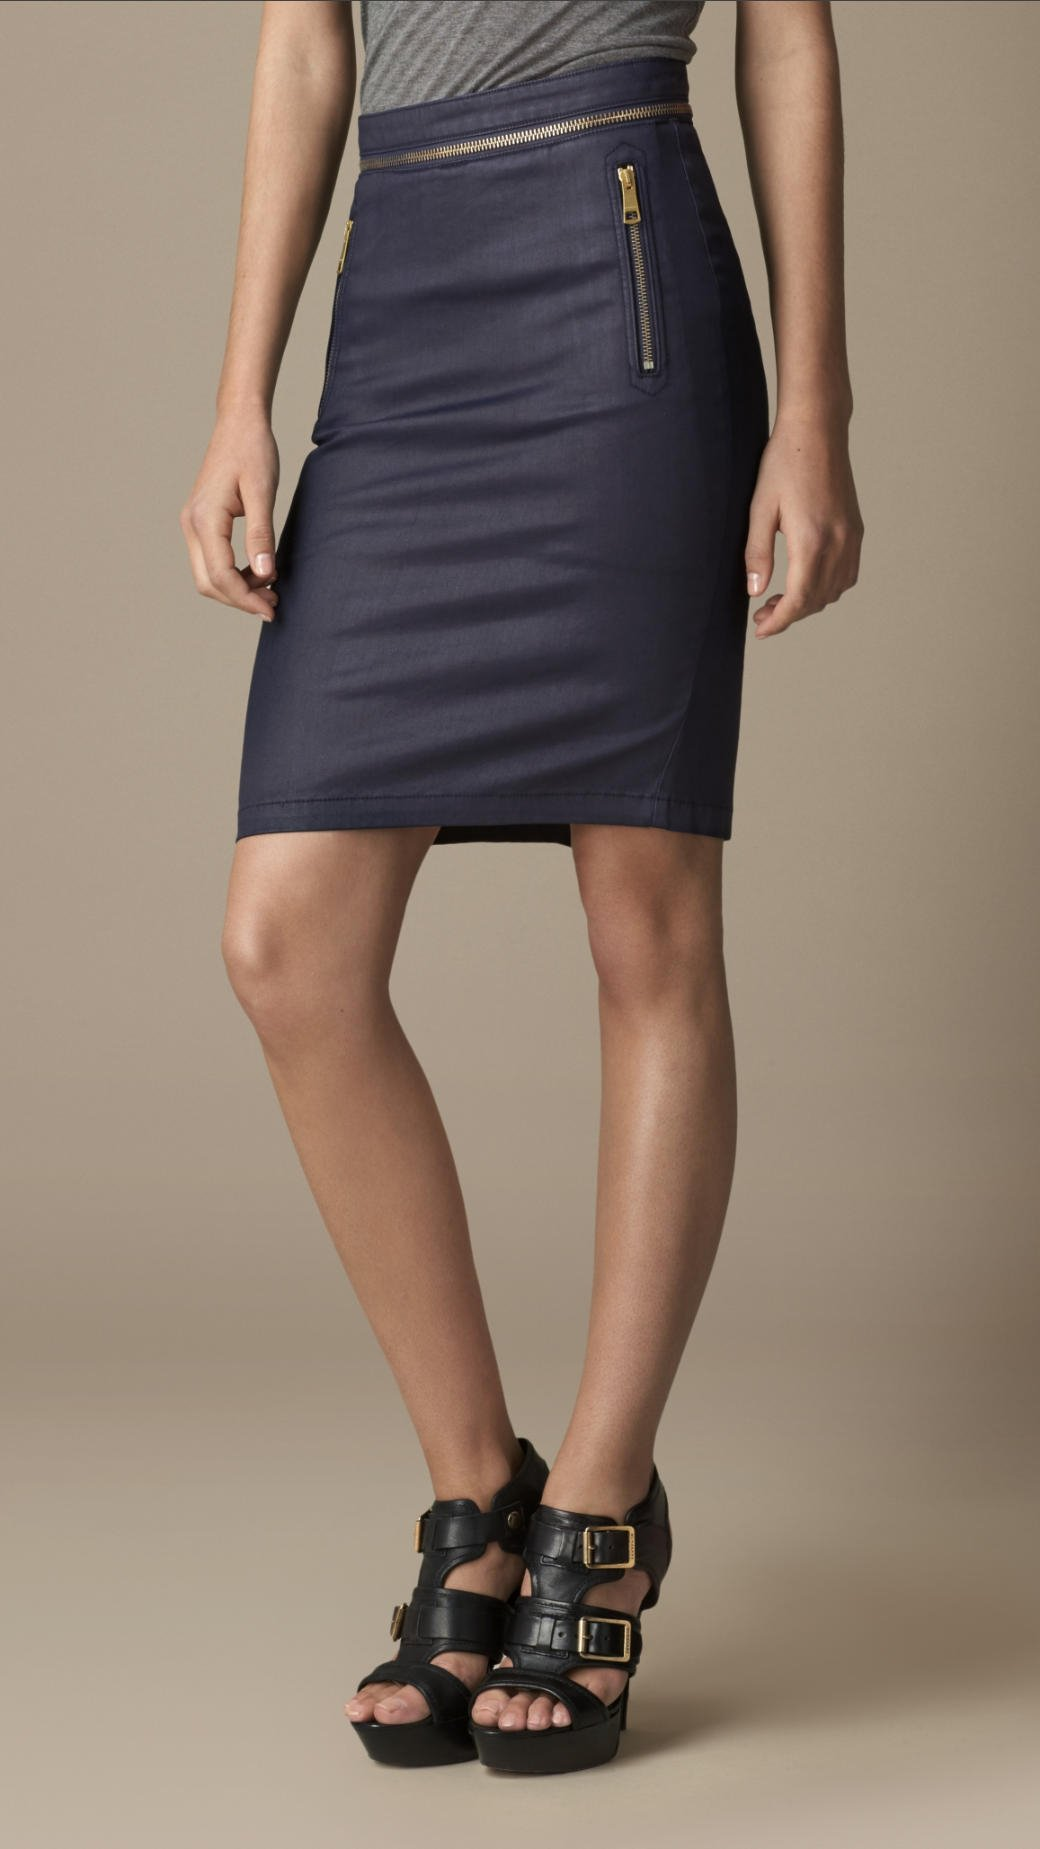 burberry coated stretch denim pencil skirt in blue indigo